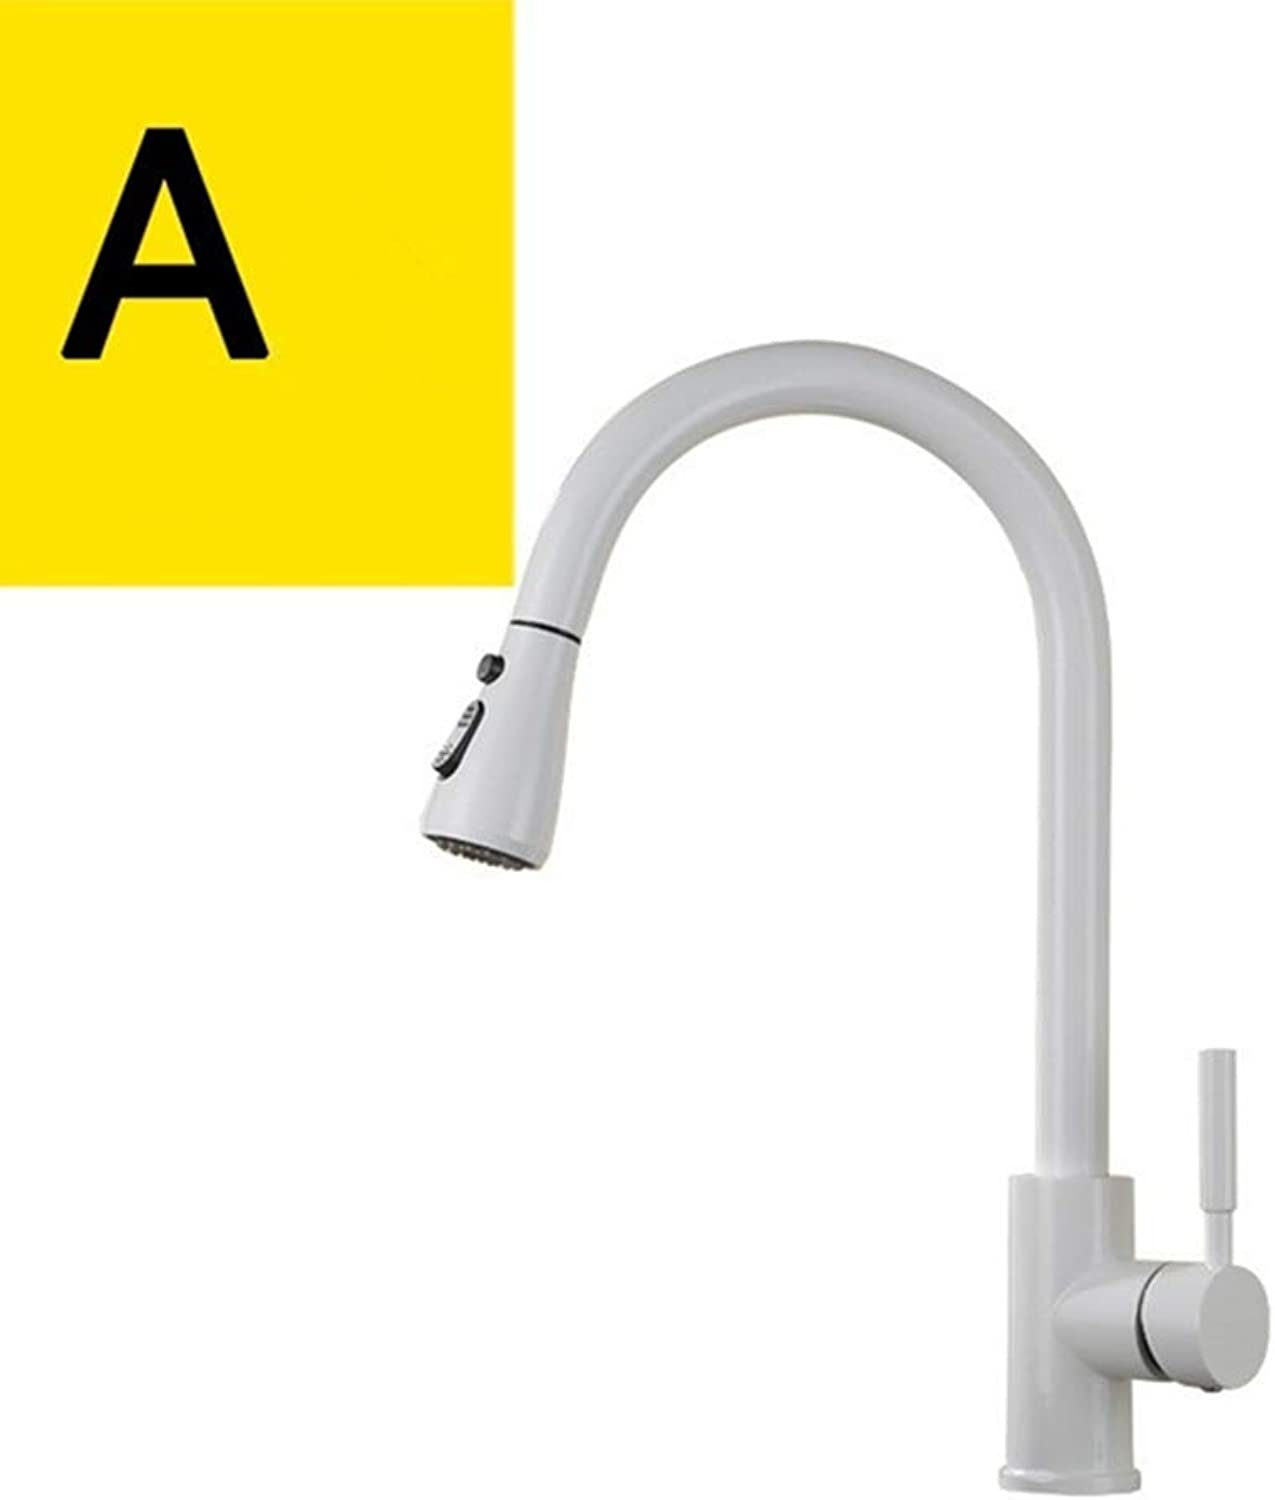 FZHLR Sink Faucet Kitchen White Finished Brass Kitchen Basin Faucet Pull Out Spring Spout Mixer Tap Single Handle Hot Cold Swivel Tap,B